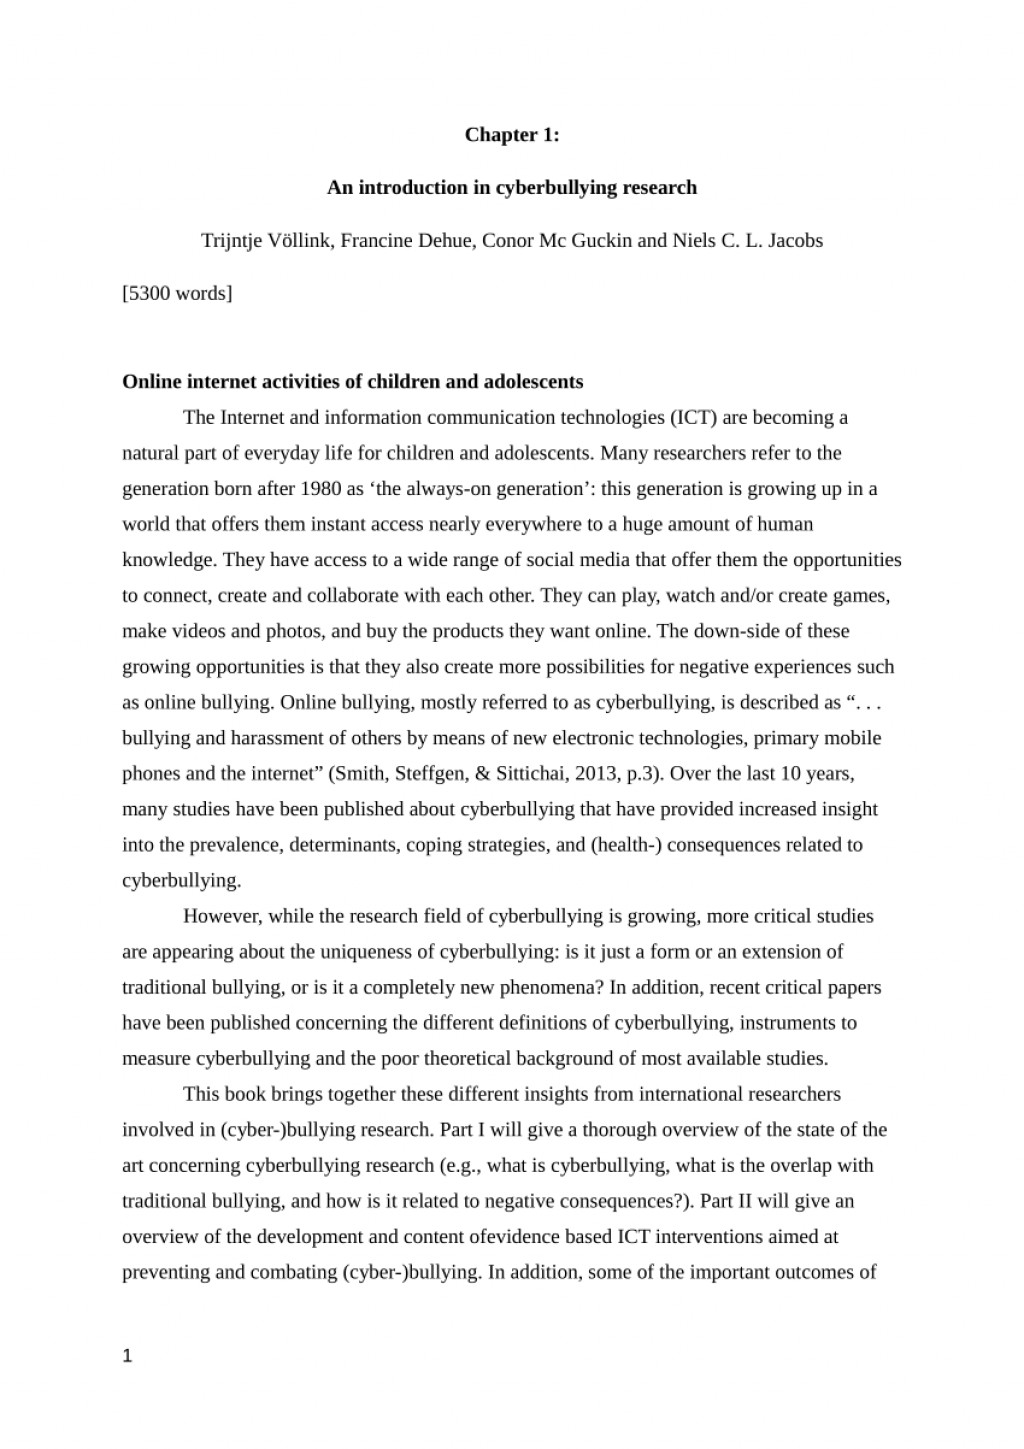 002 Research Paper Cyberbullying Top Center 2015 Outline Large